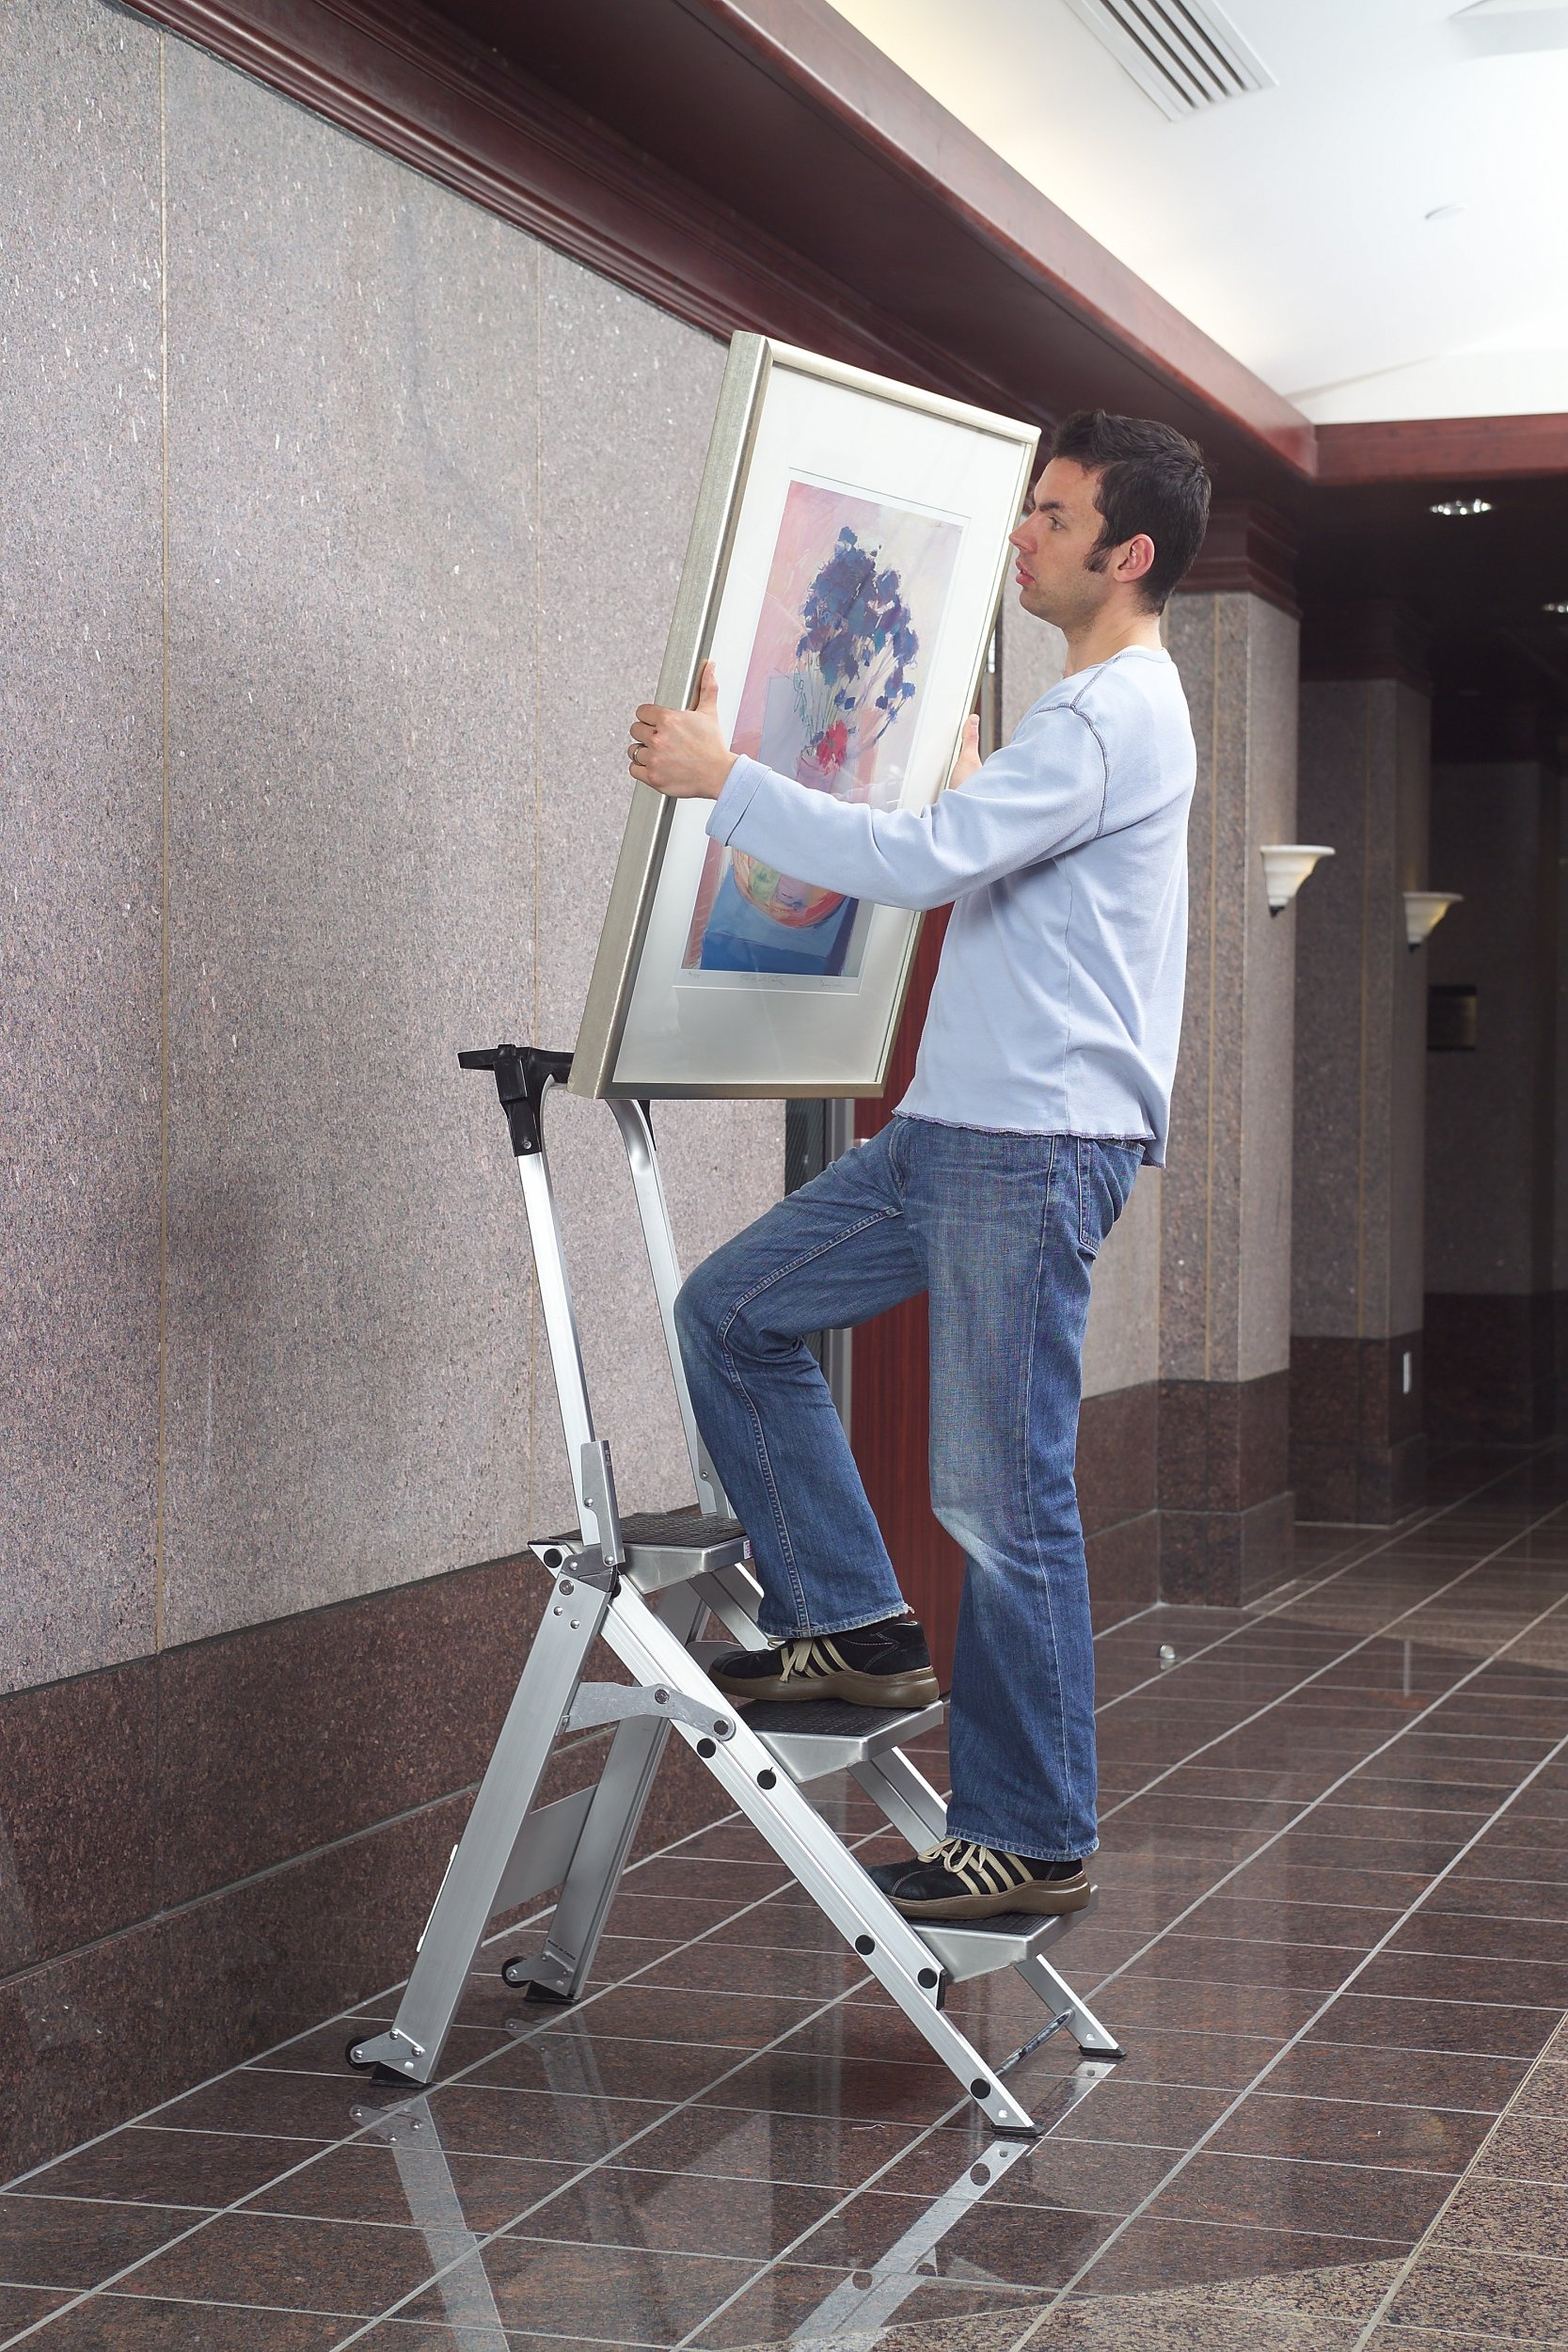 Little Giant, 3 step, Aluminum, 2-1/4 Feet, 300 lb. Capacity Stepladder by Little Giant Ladder Systems (Image #3)